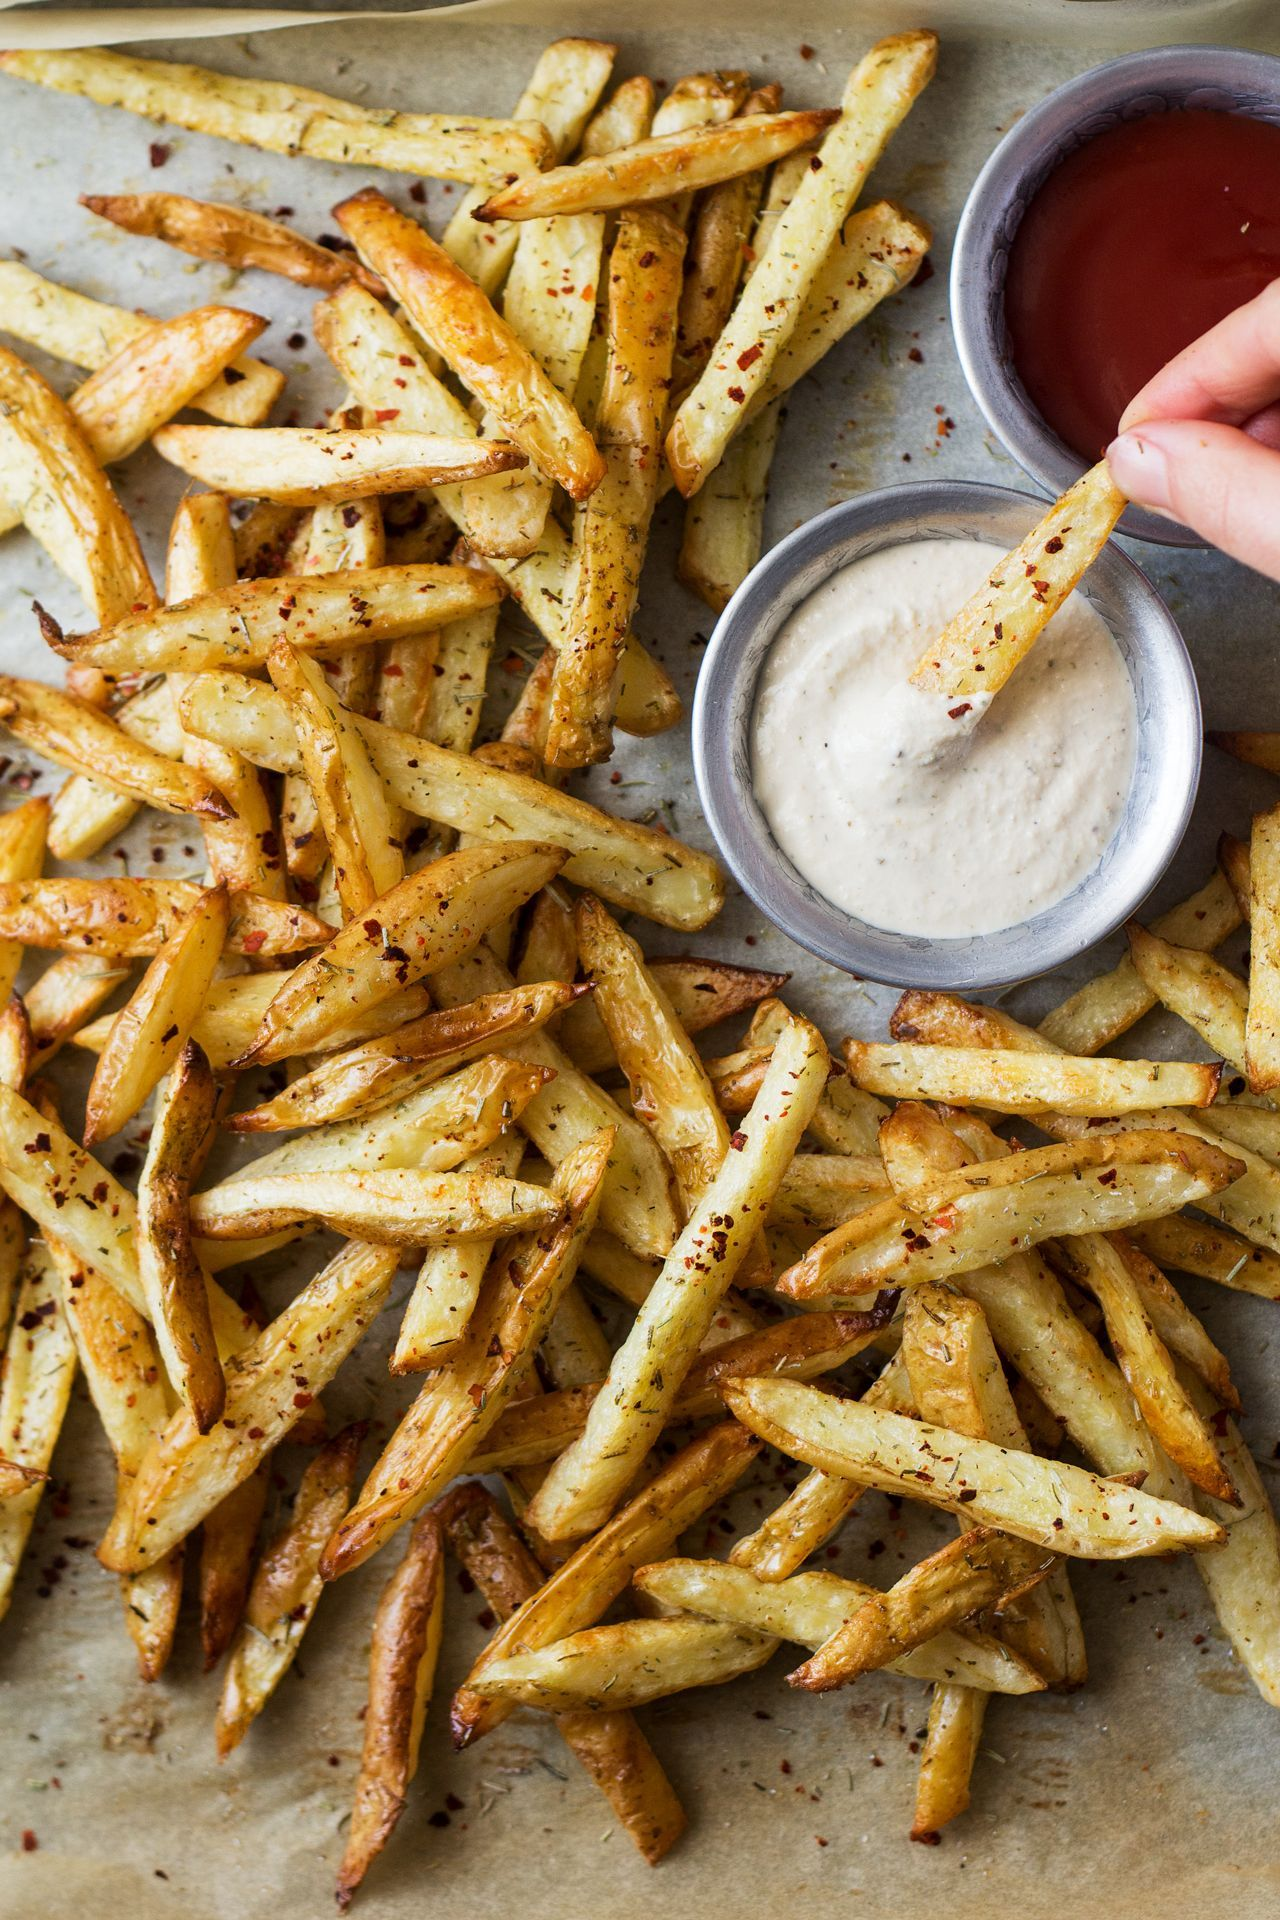 fries with roasted garlic dip These rosemary fries come with an addictive roasted garlic dip. They are super easy to make, crispy and indulgent despite being baked. Vegan, gluten-free.These rosemary fries come with an addictive roasted garlic dip. They are super easy to make, crispy and indulgent despite being baked. Vegan, gluten-free.